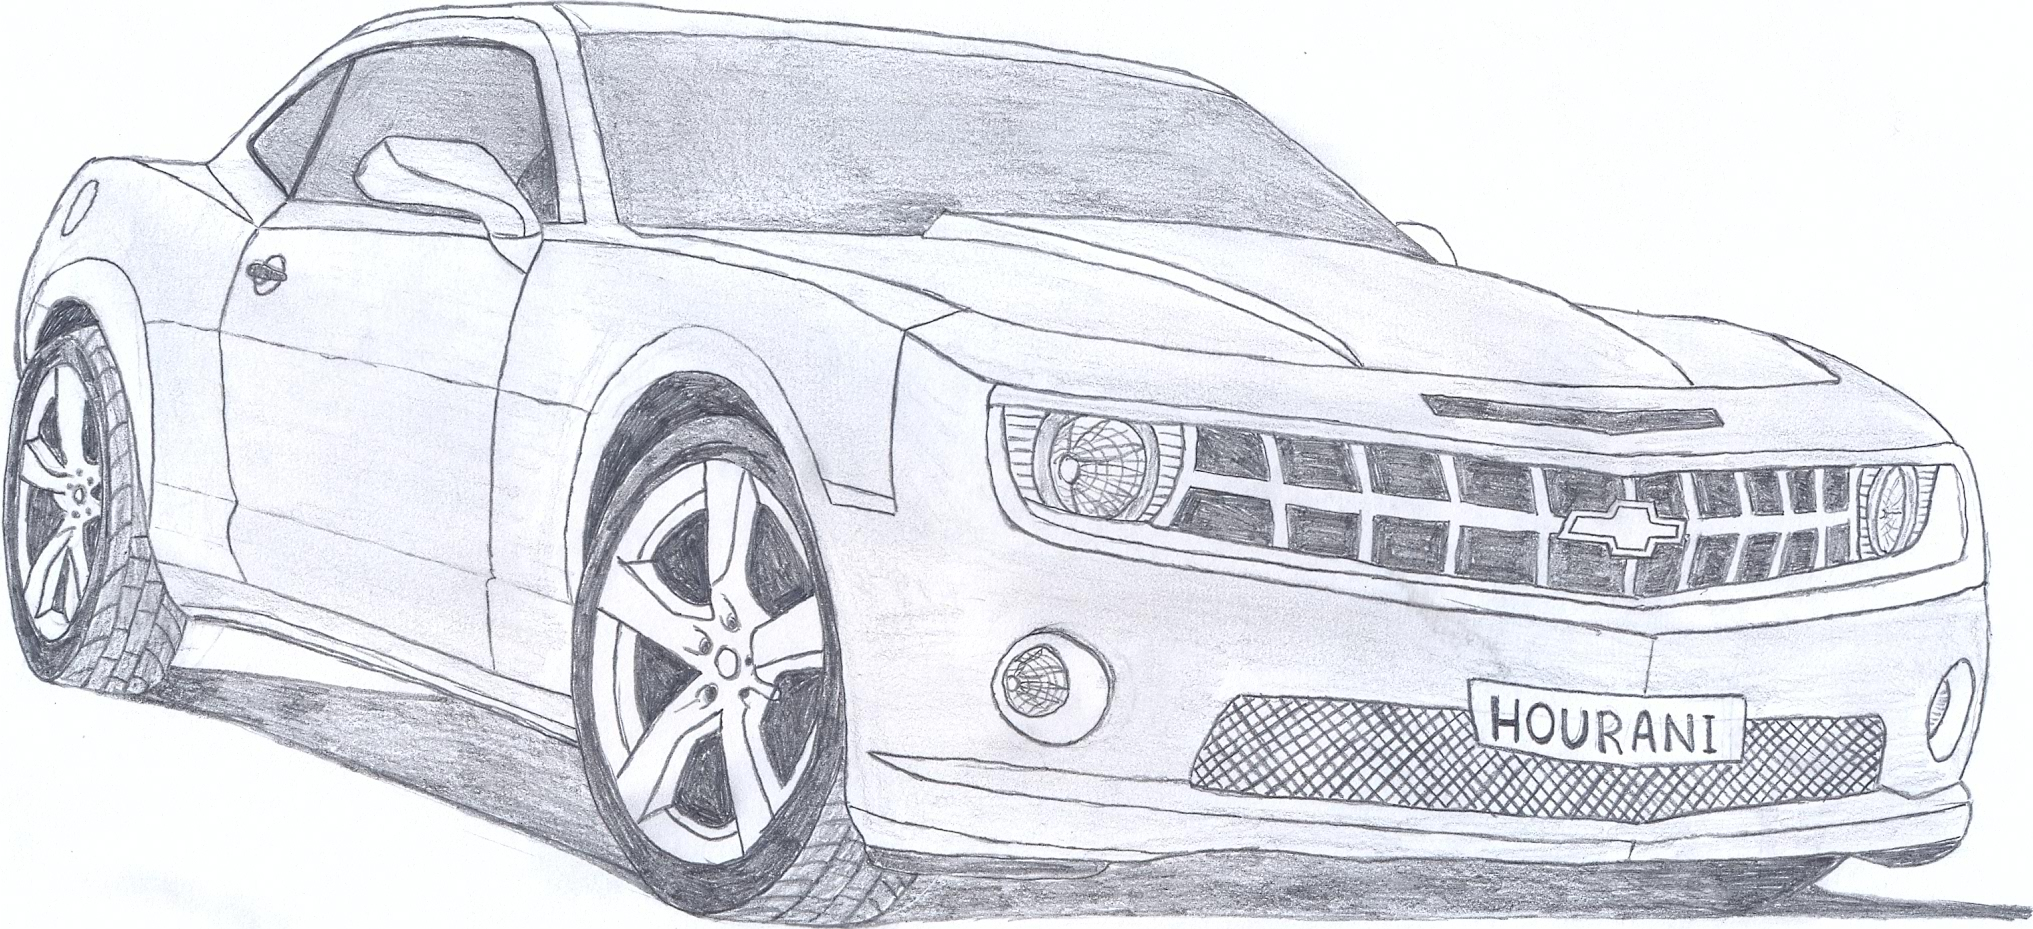 2010 Camaro Drawings Www Pixshark Com Images Galleries